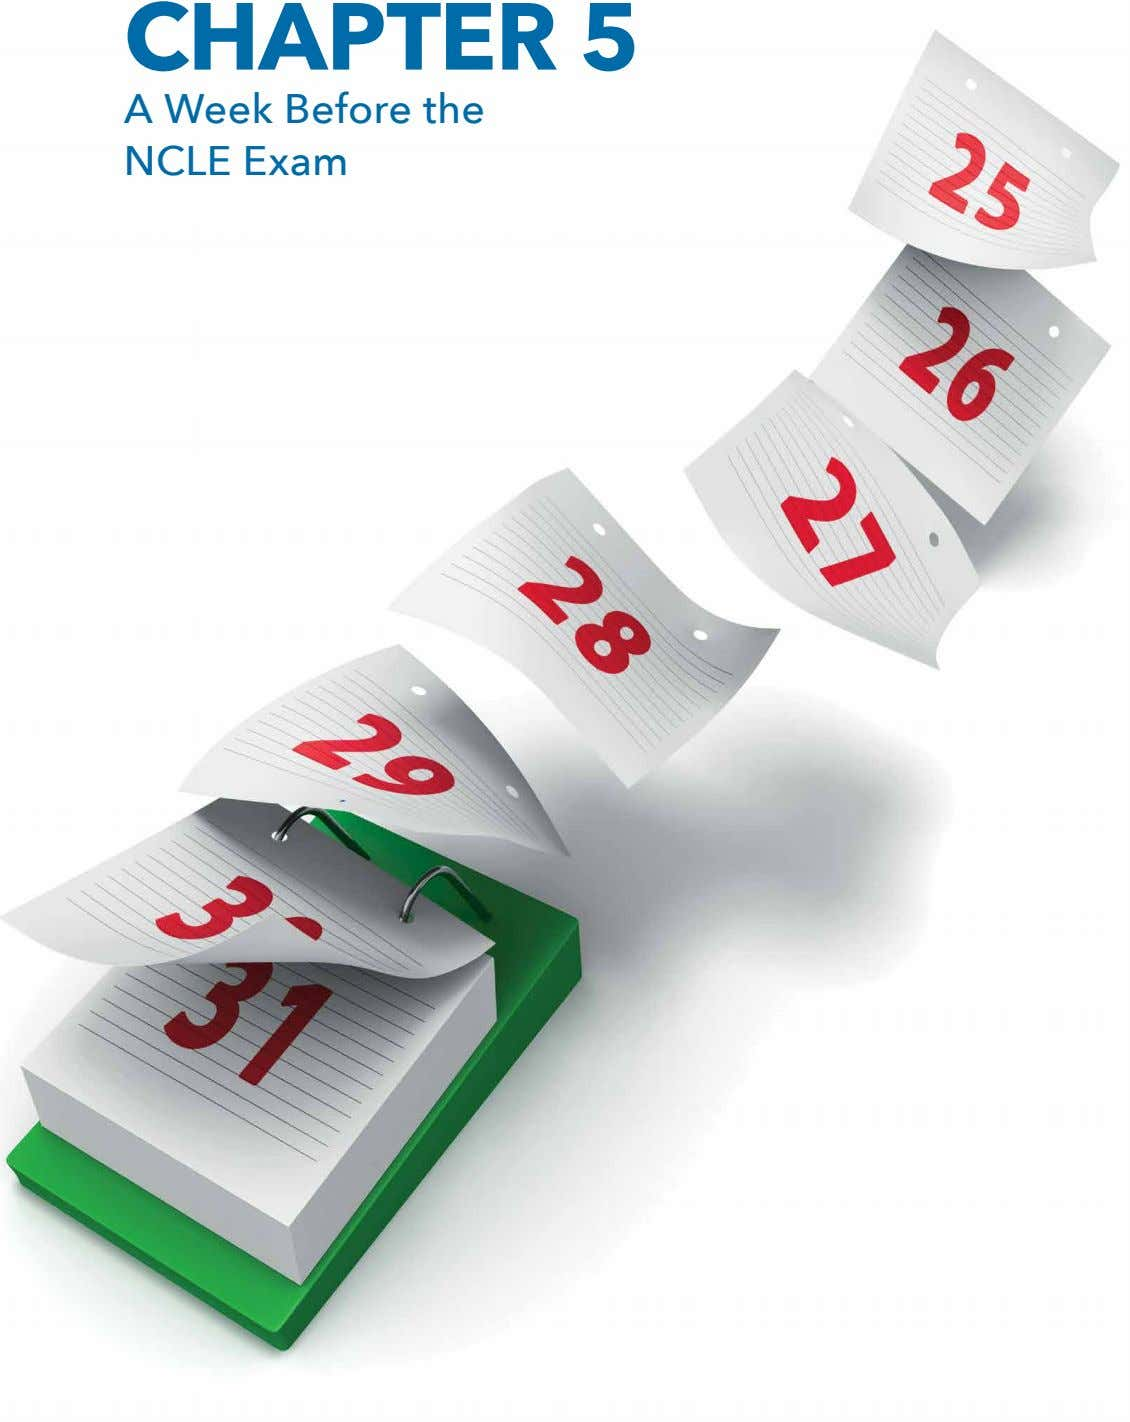 CHAPTER 5 15 15 A Week Before the NCLE Exam www.mcreelearningcenter.com/exam-prep/national-contact-lens-examiners-ncle-exam/ UTest Prep is the only